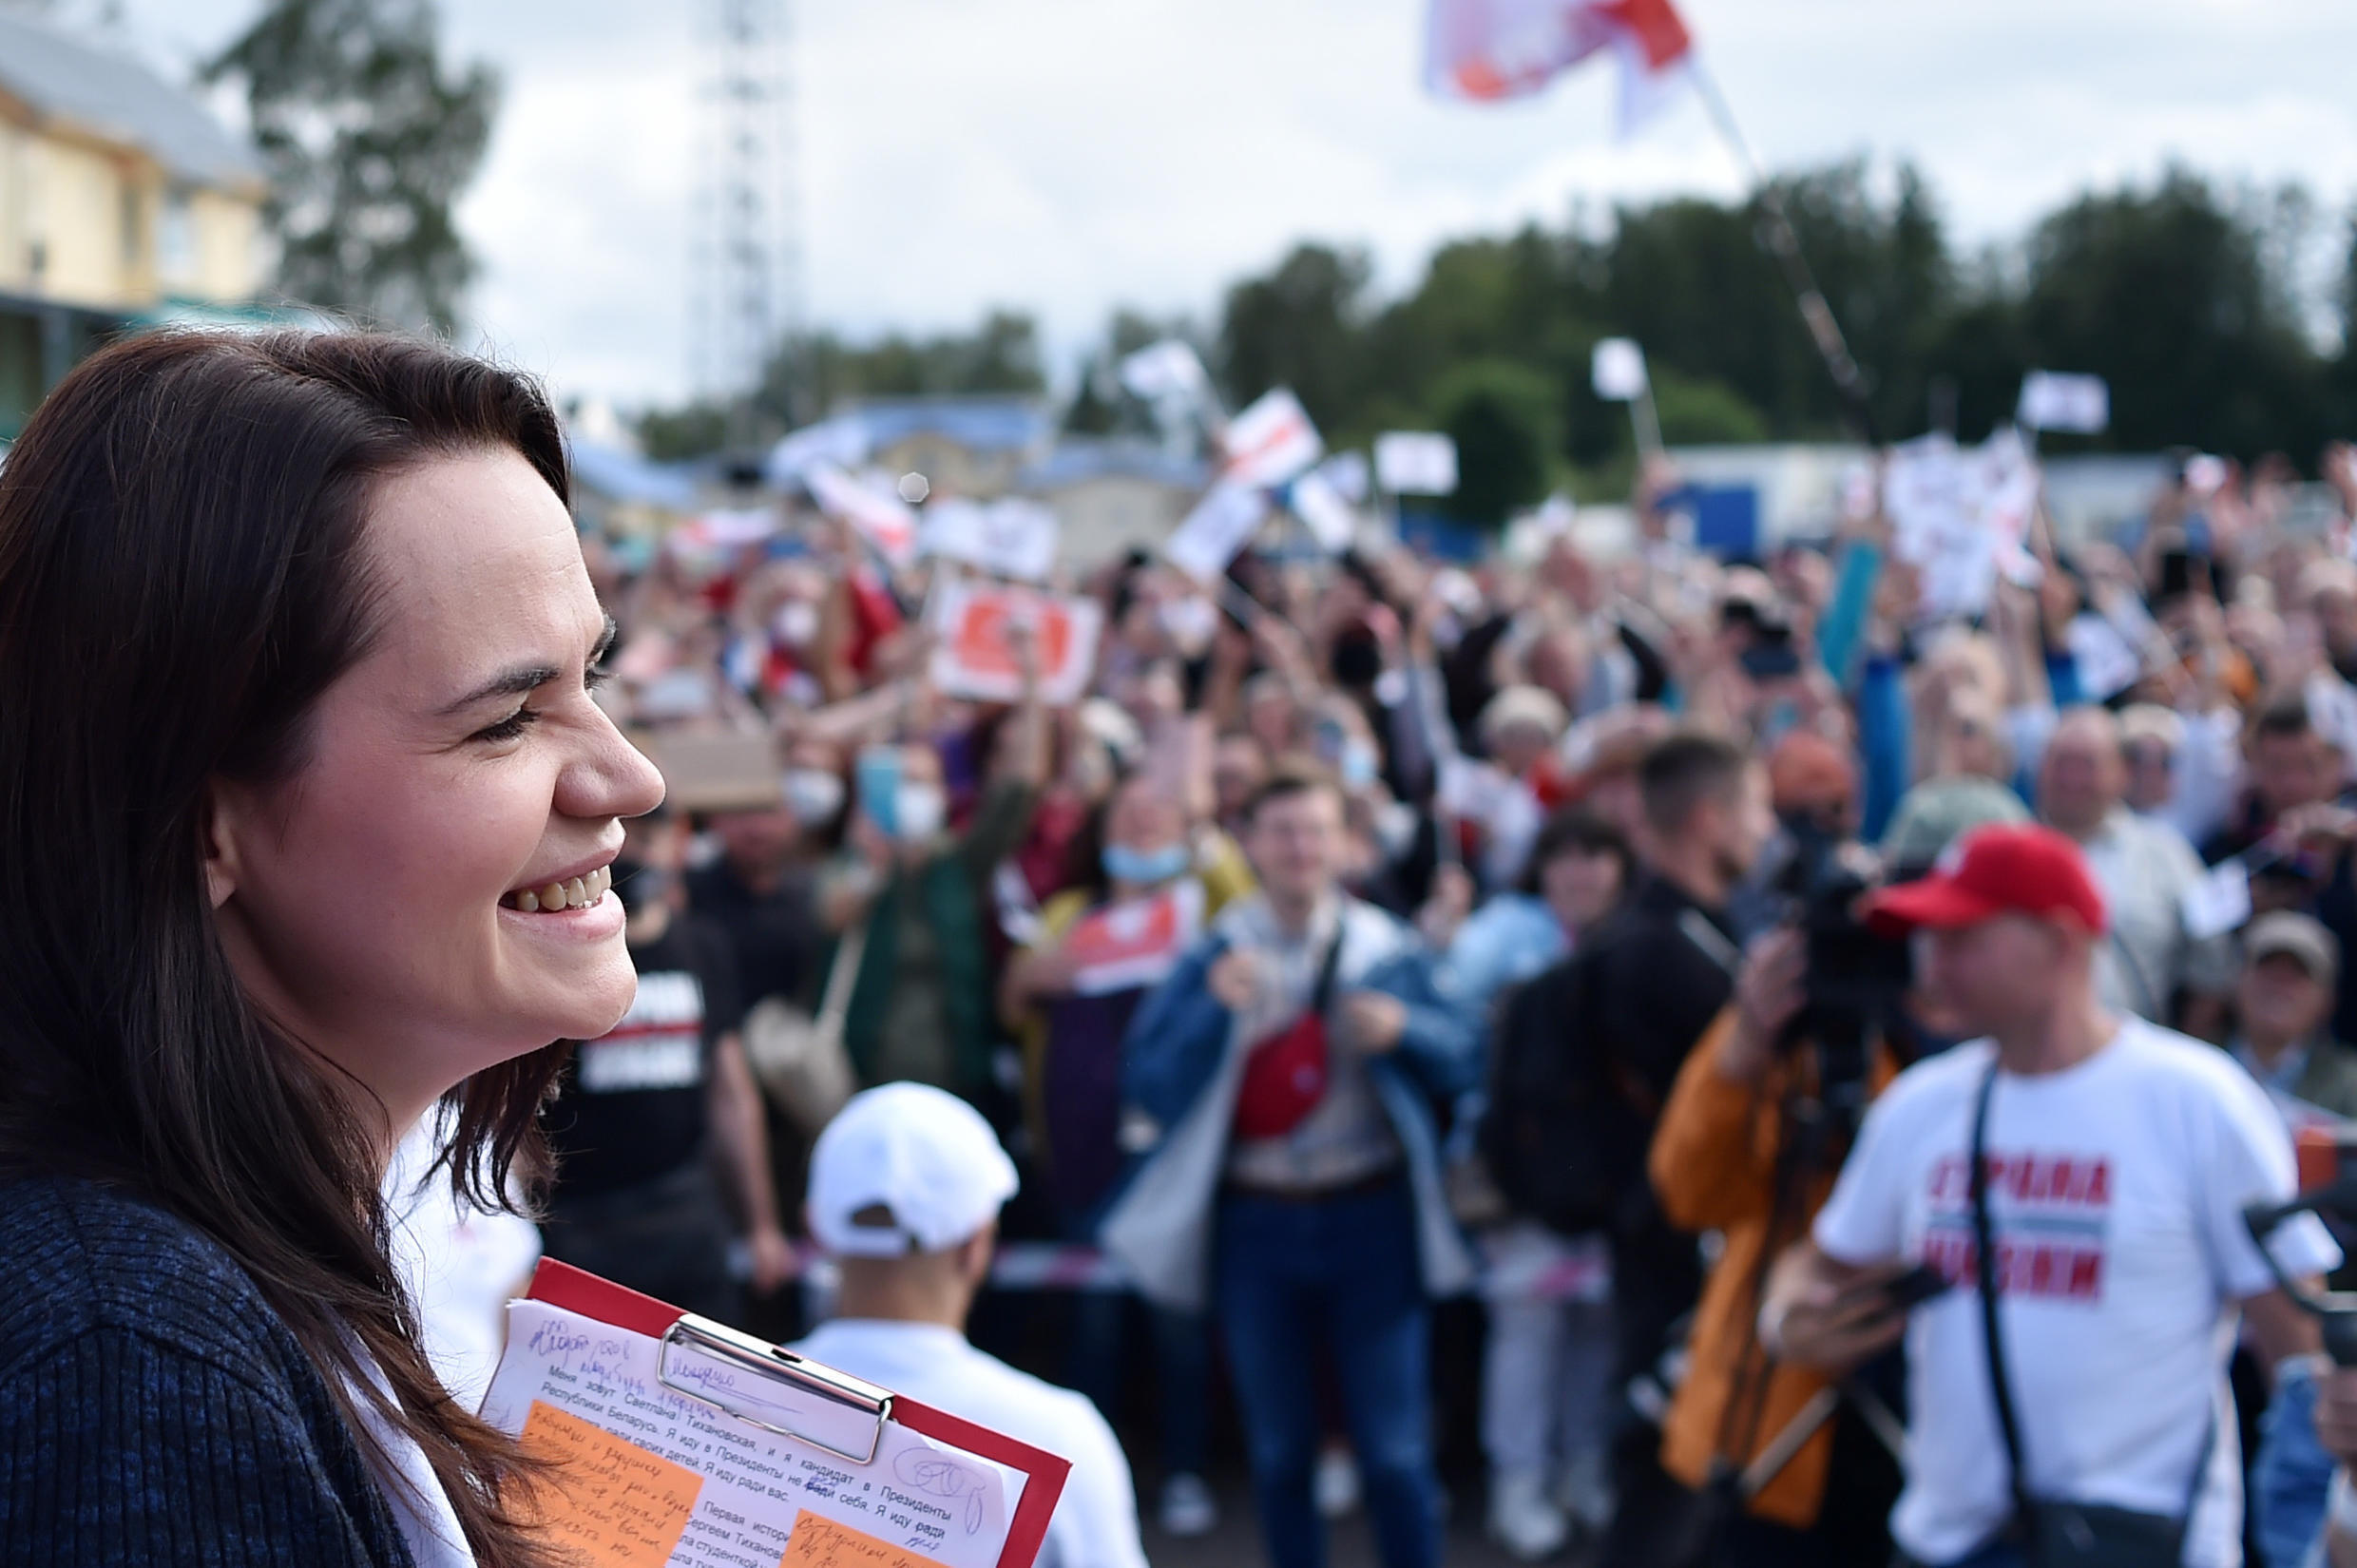 Tikhanovskaya stepped into the race at great personal risk after the detention of her husband, who had hoped to stand himself